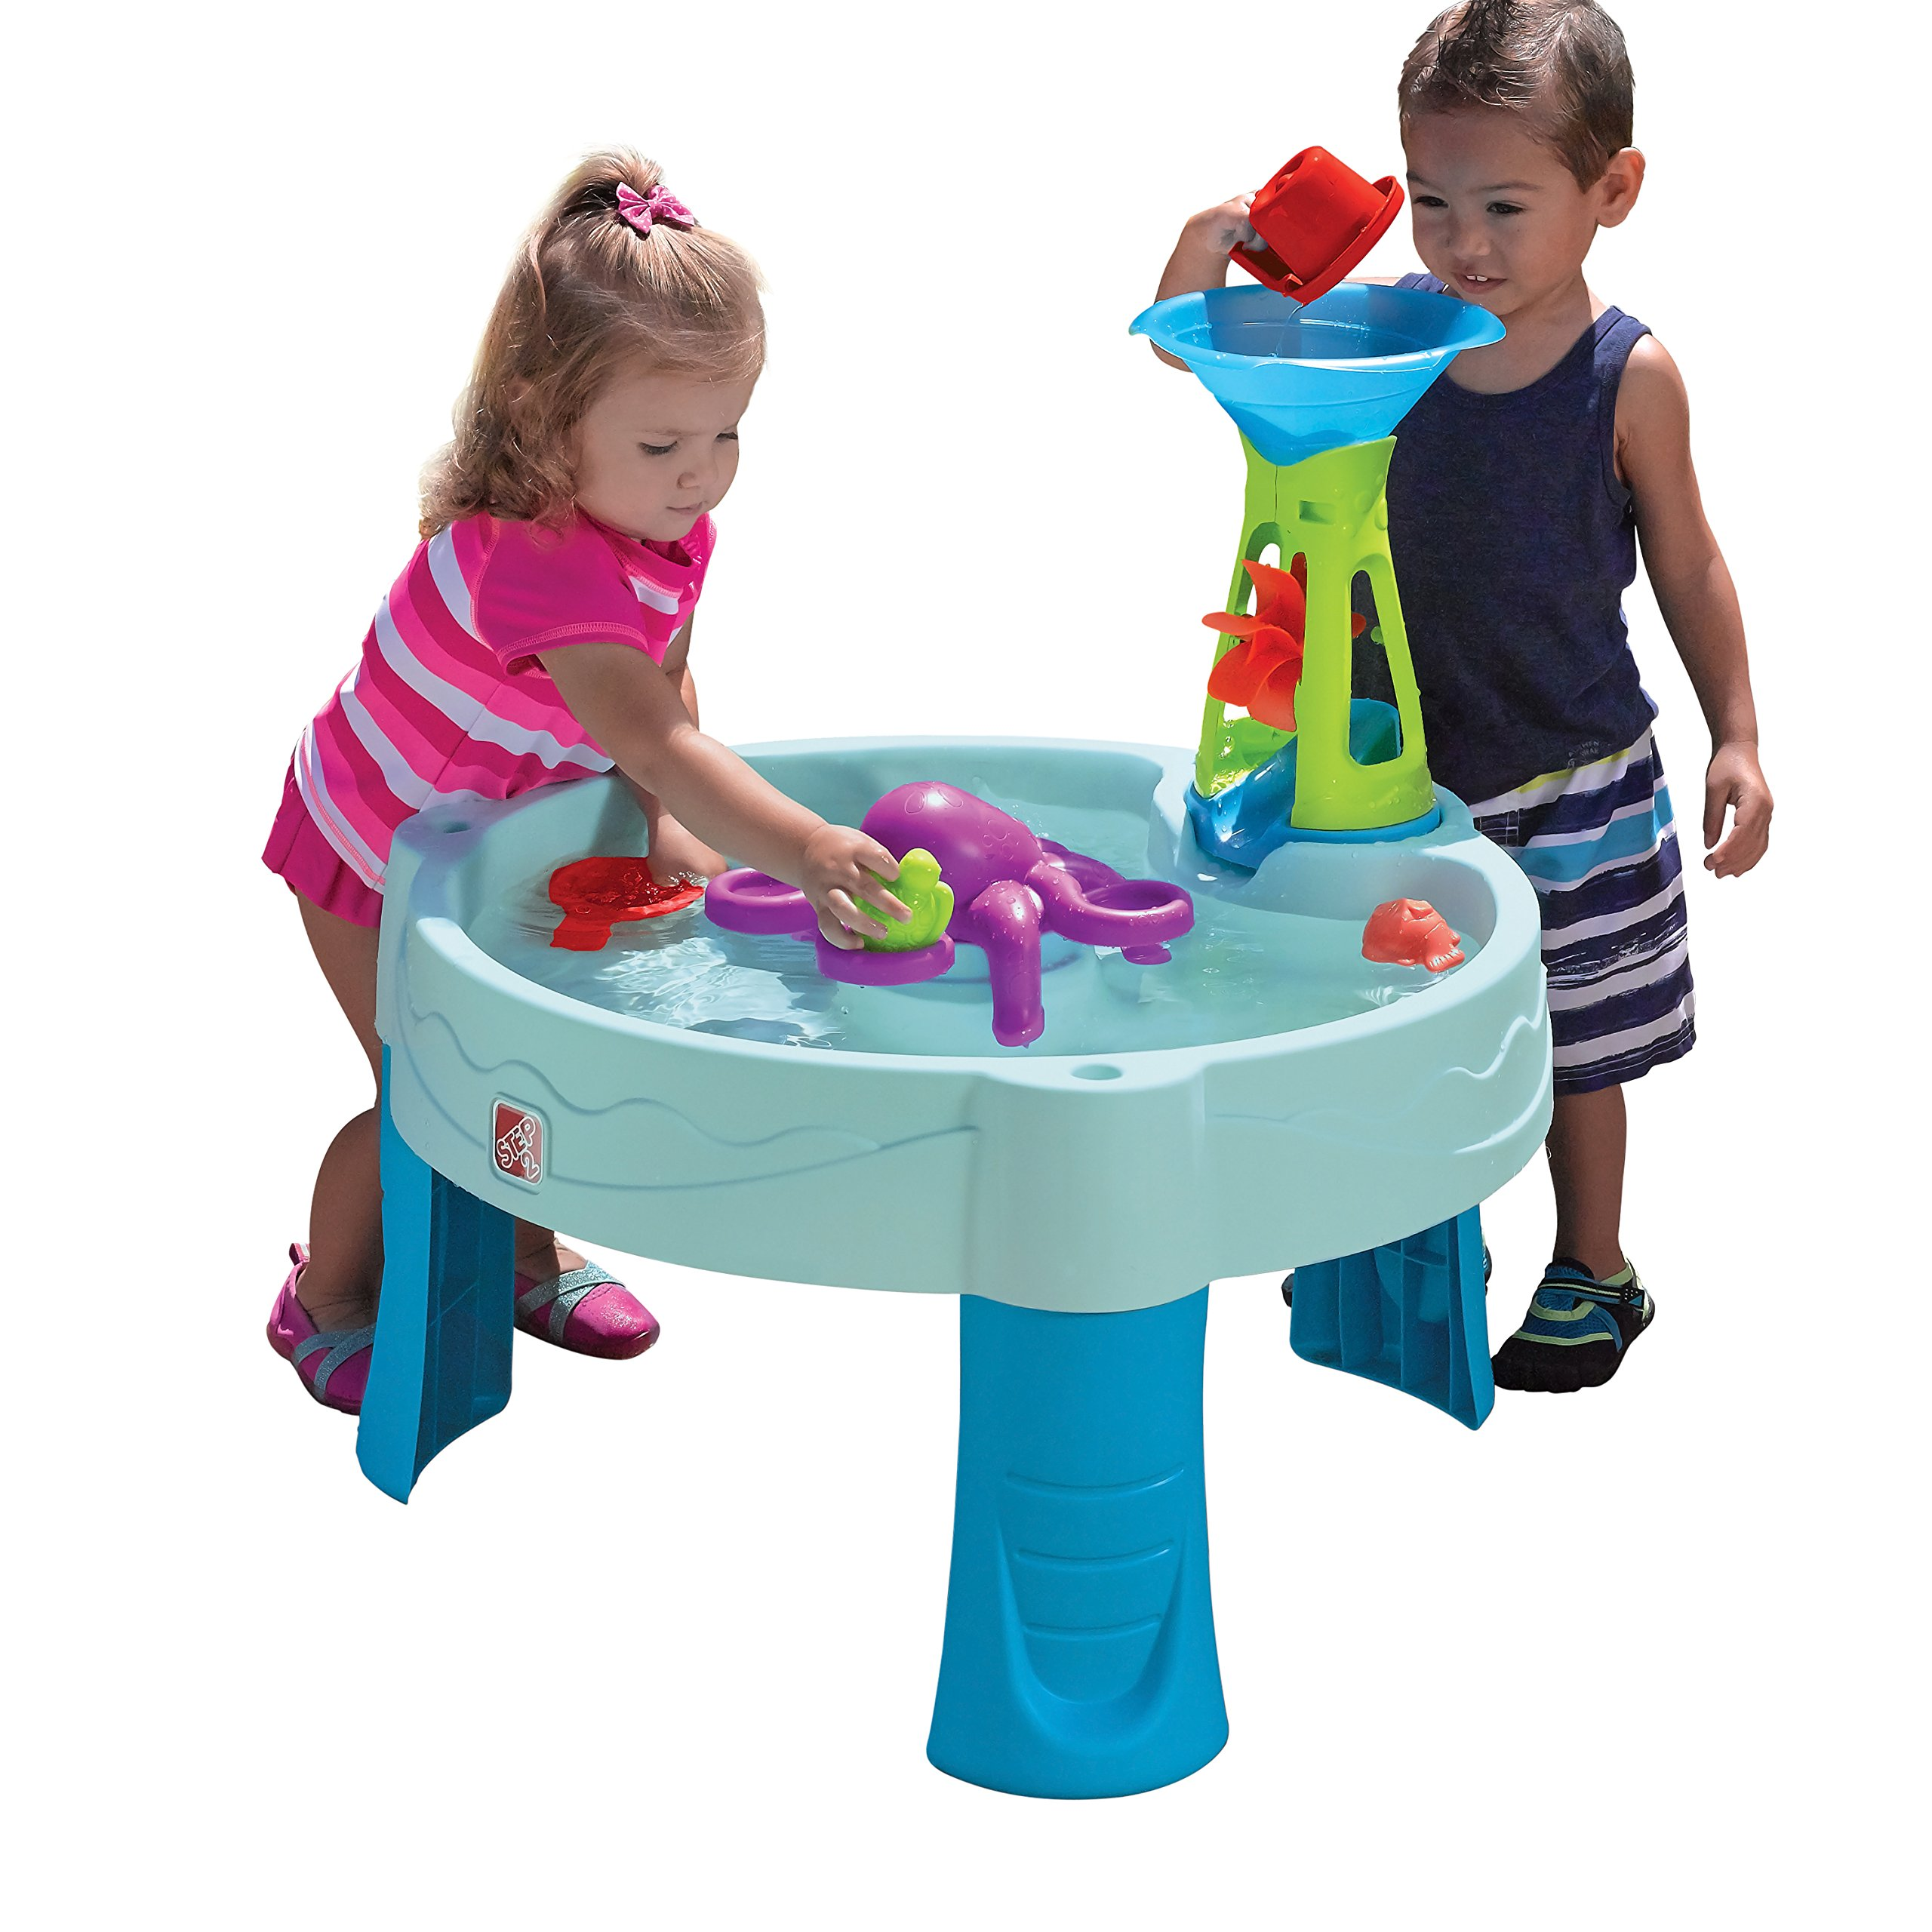 Step2 Octopus Spinner Water Table Playset